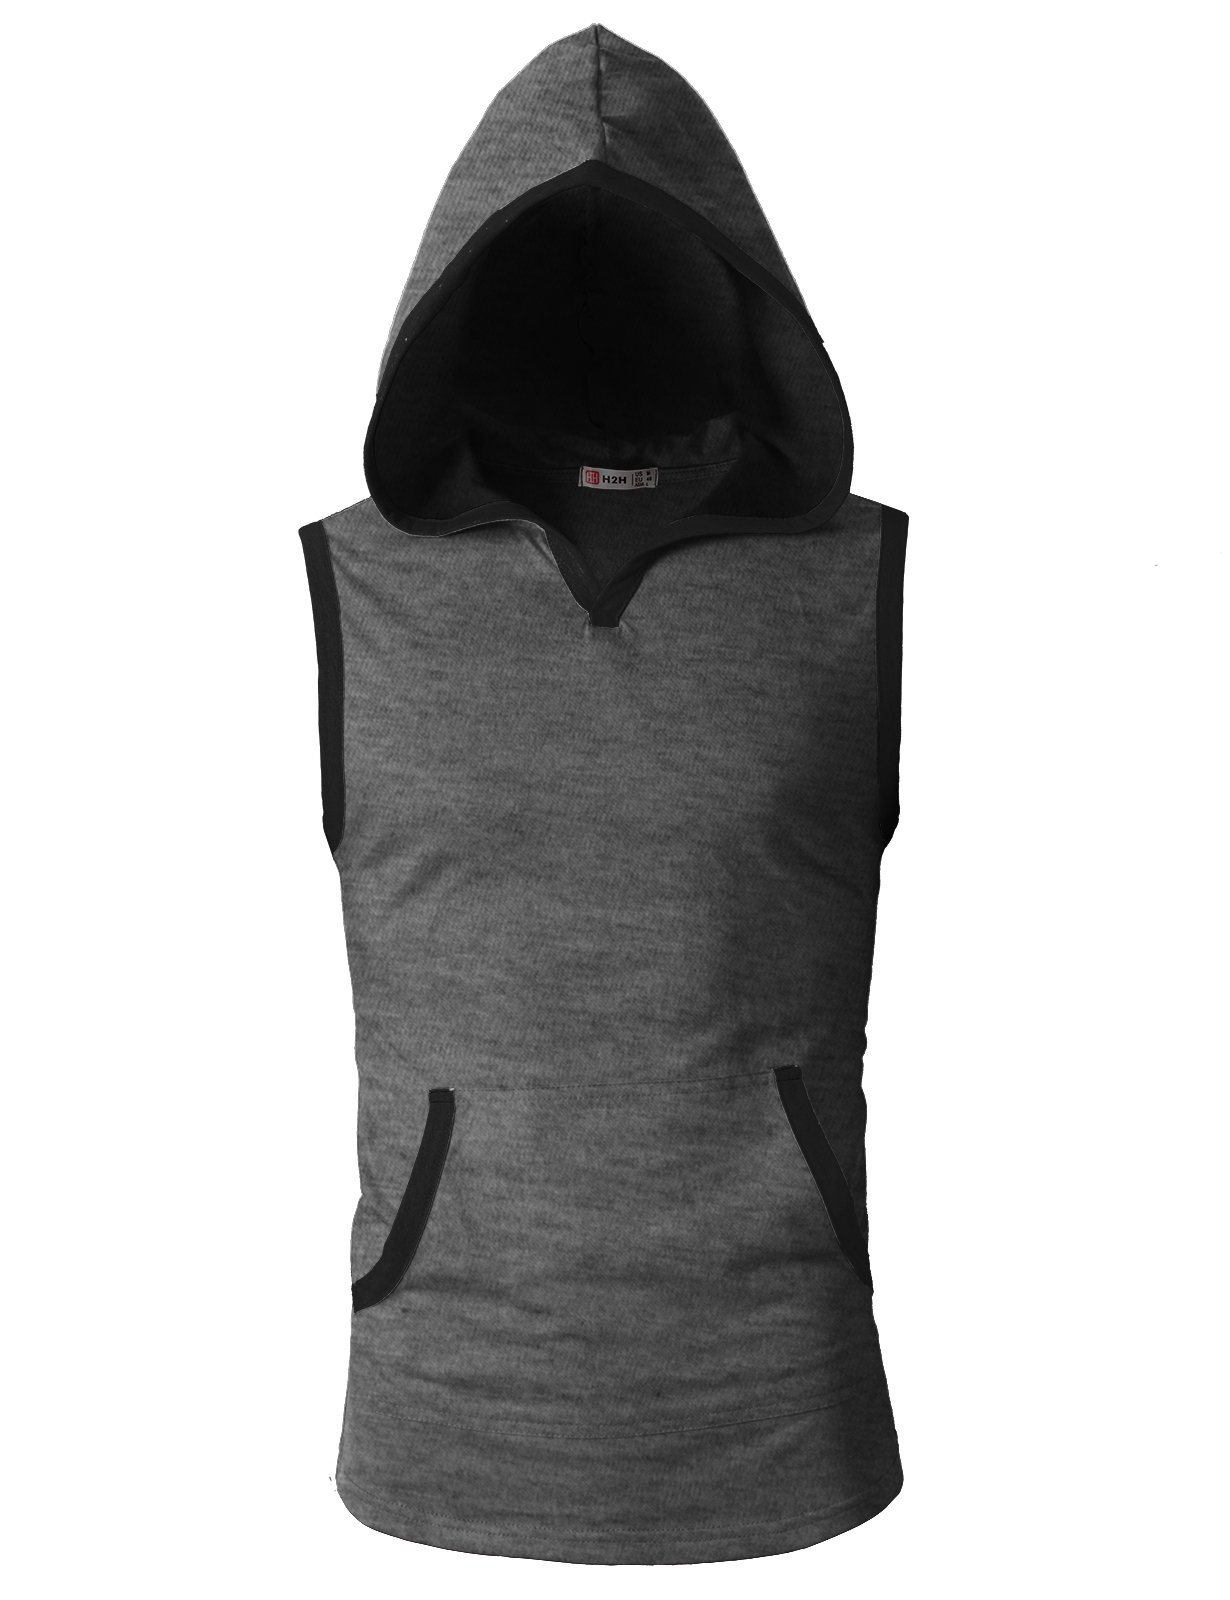 H2H Men's Workout Gym Fitness Muscle Sleeveless Pullover Hoodie Charcoal US S/Asia M (CMTTK015)